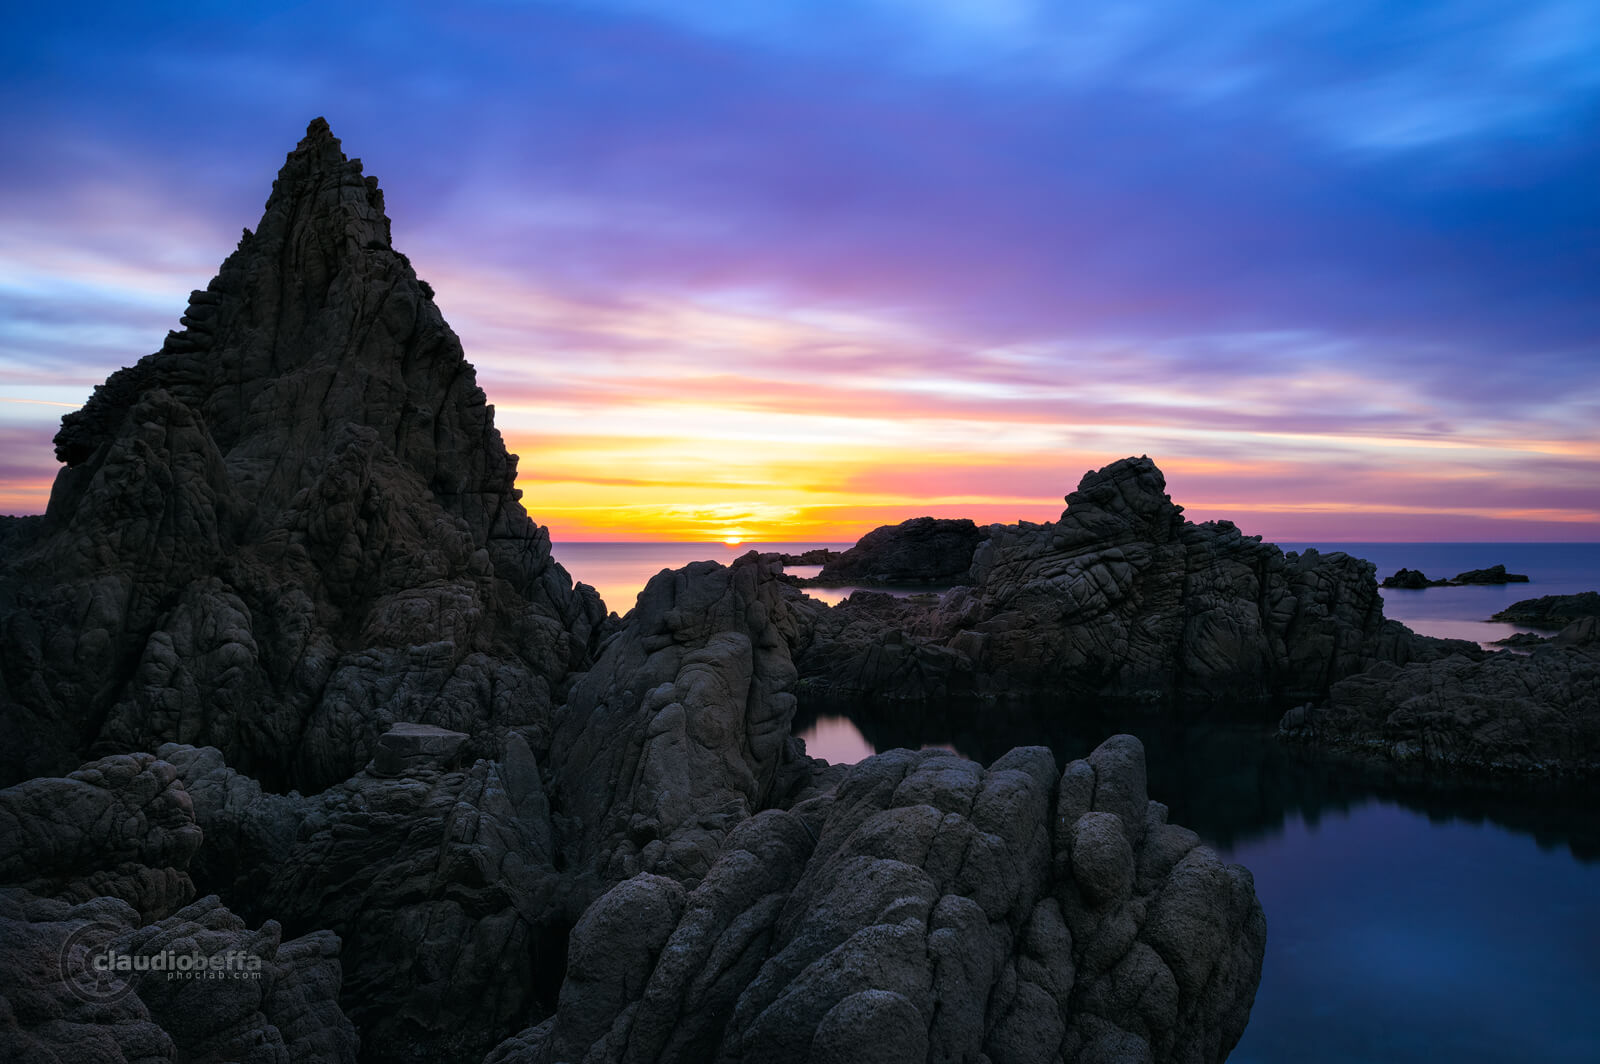 Capo Pecora, Sardinia, Italy, Sea, Seascape, Sunset, Blue hour, Cove, Rocks, Silhouettes, Long exposure